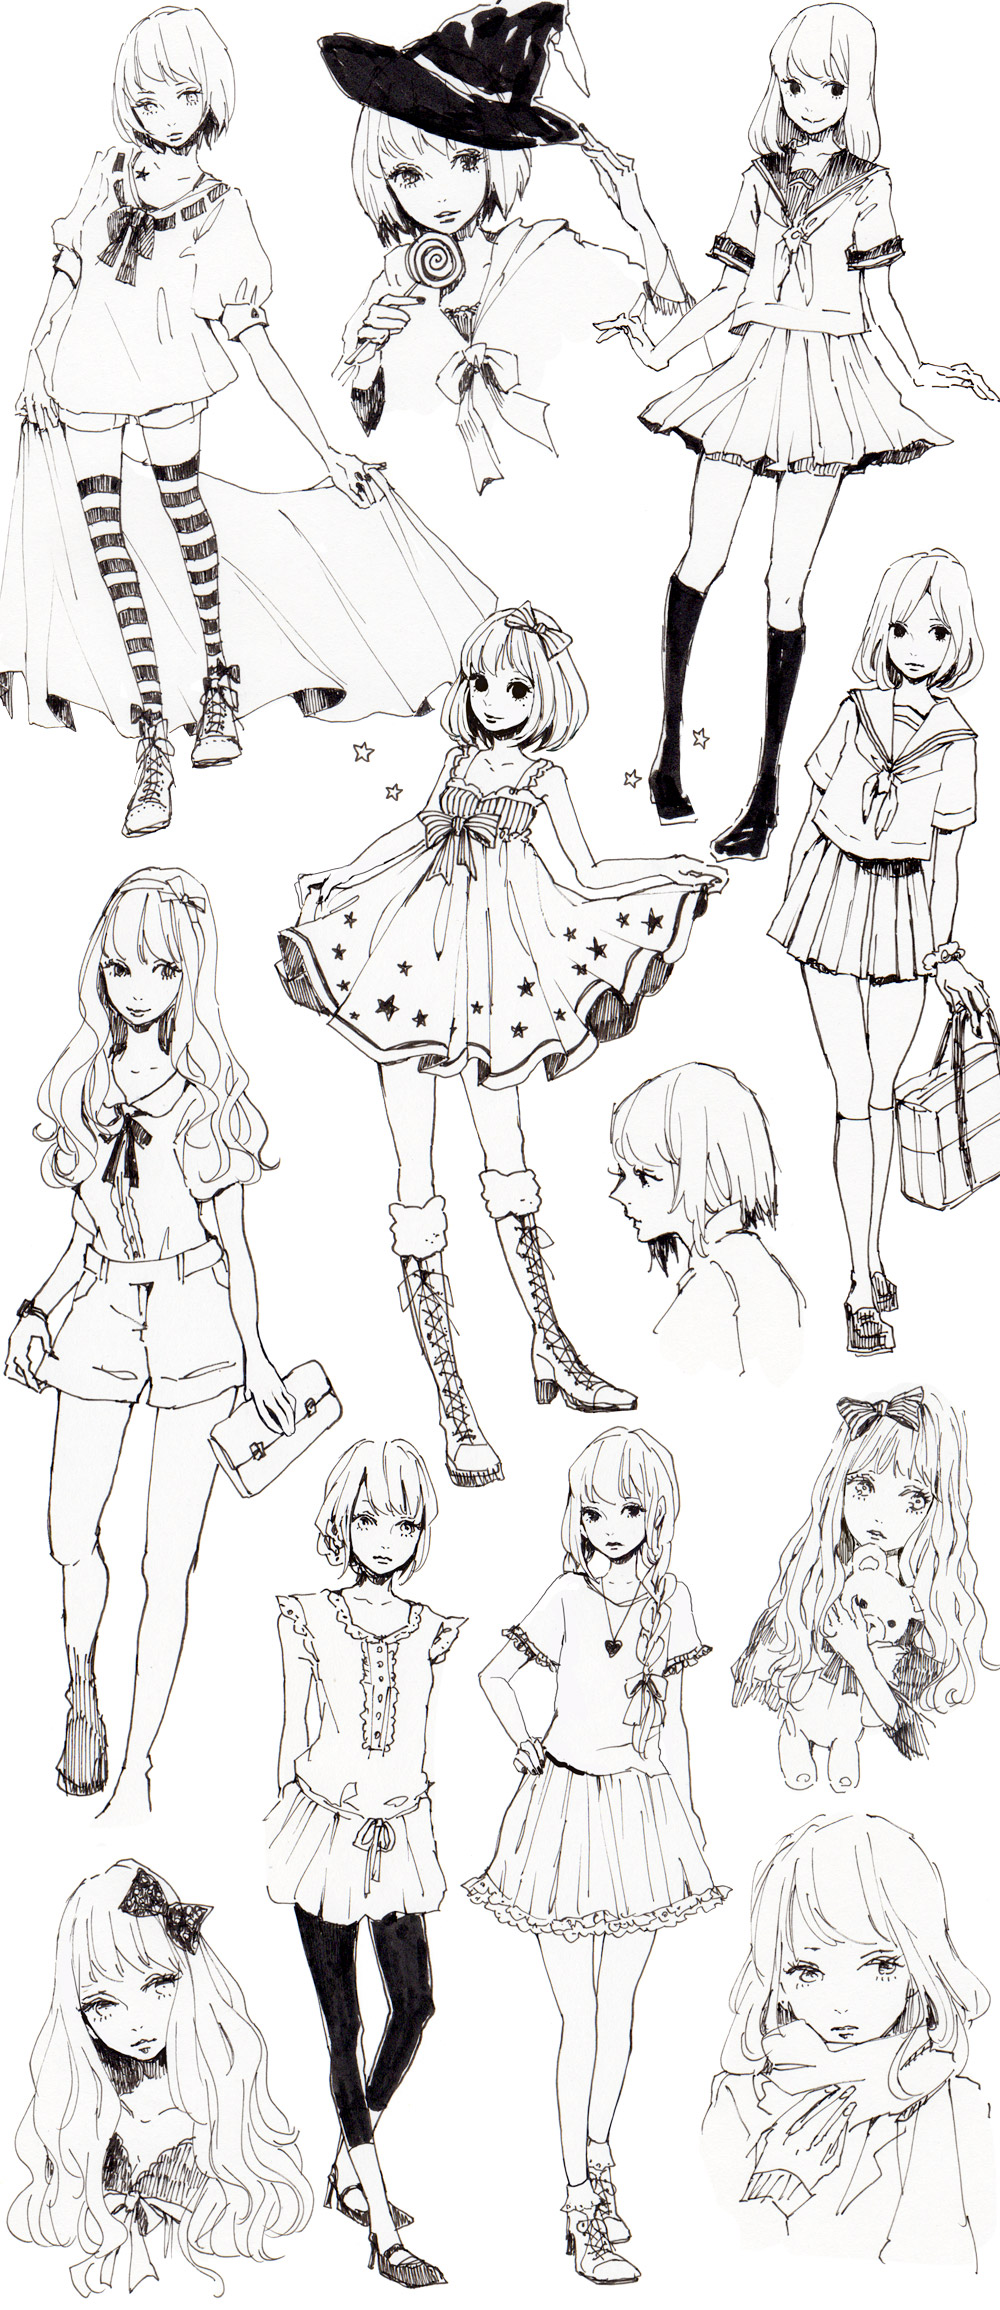 Different Poses & Clothes References. This sheet has a lot of nice